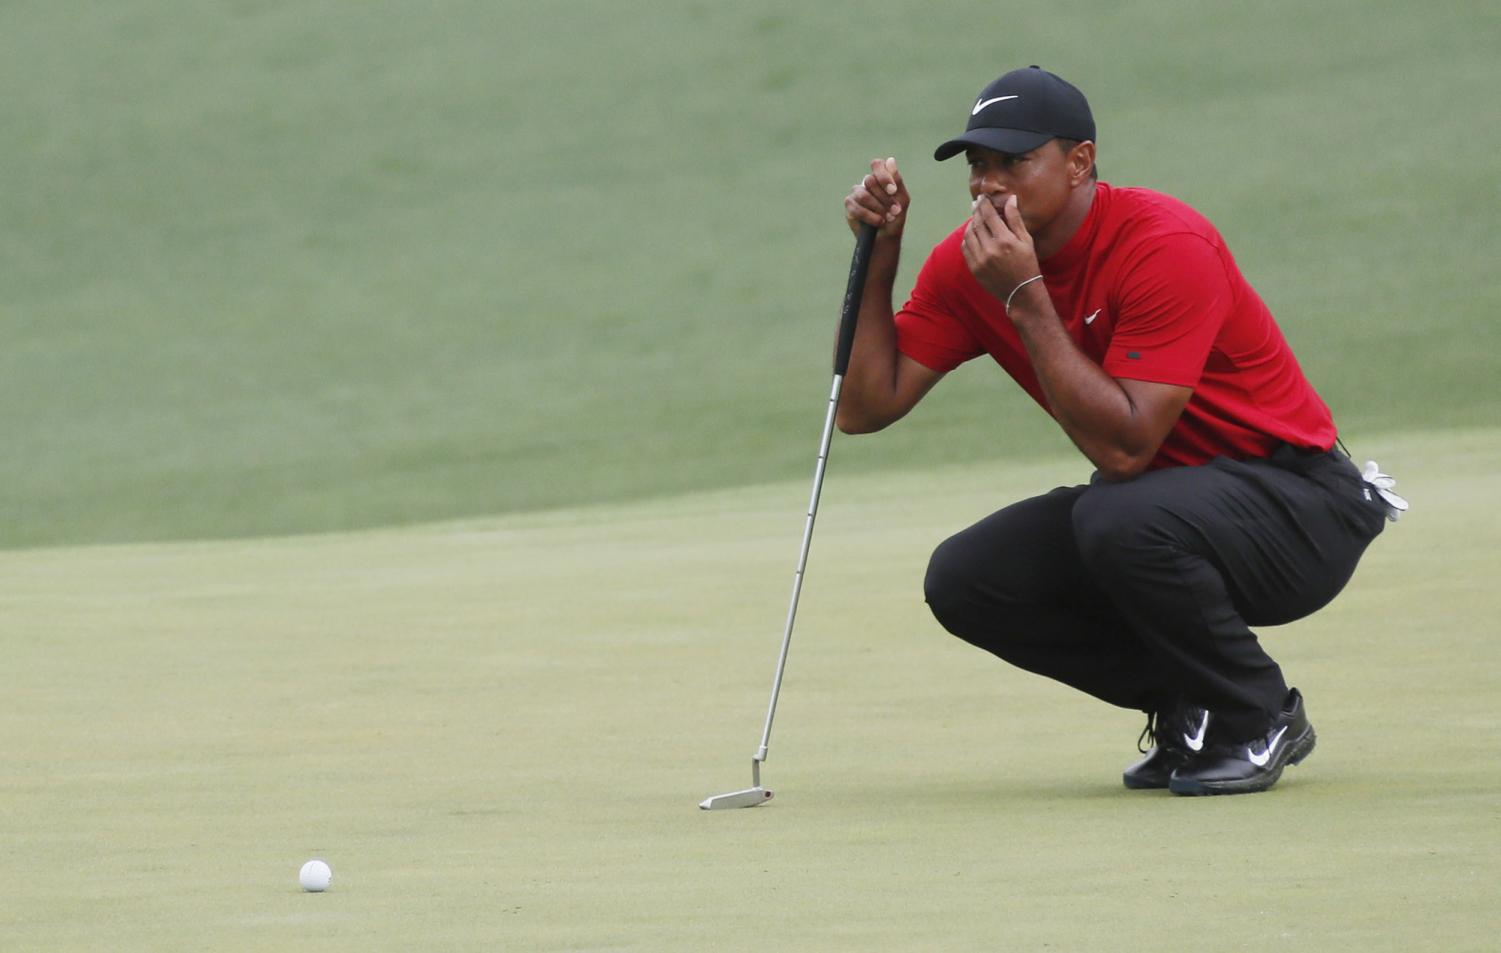 Tiger Woods lines up his putt on 2 during the final round of the Masters on Sunday, April 14, 2019, at Augusta National Golf Club in Augusta, Ga. (Bob Andres/Atlanta Journal-Constitution/TNS)